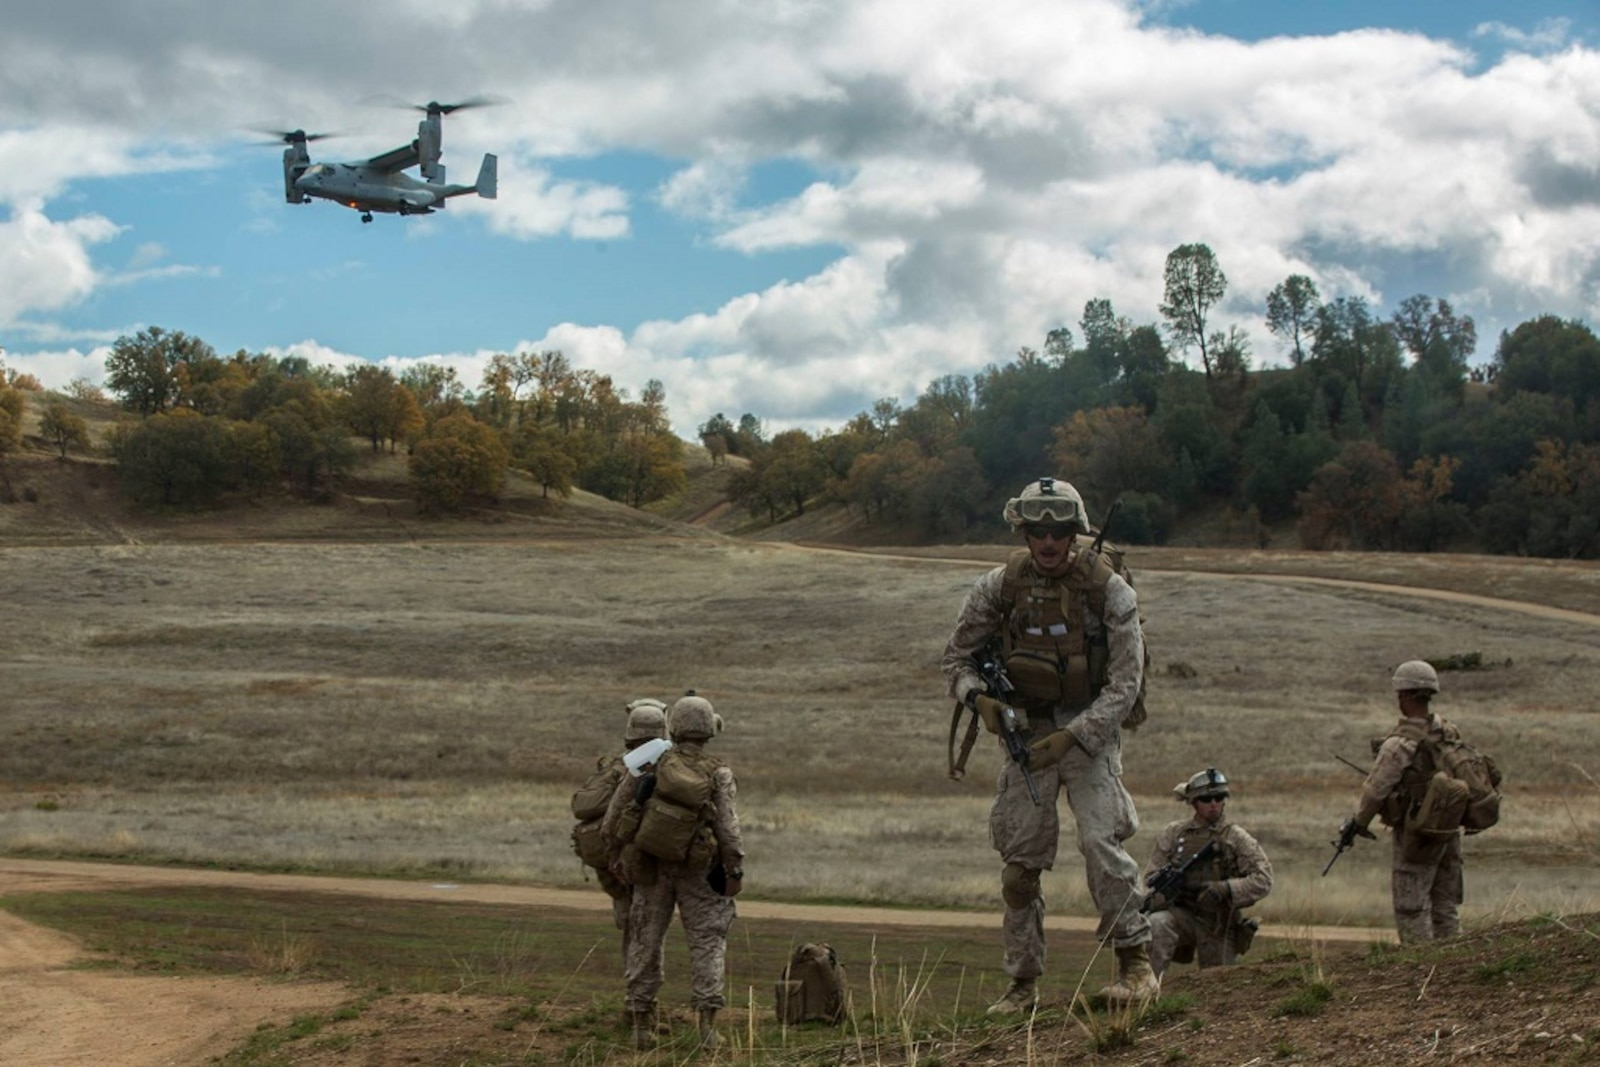 """Marines and Sailors with 1st MLG successfully completed Steel Knight 16 this week, making their way home from Marine Corps Air Ground Combat Center Twentynine Palms. Here are some of the top shots from the exercise. Like your favorite and the photo with the most """"votes"""" on Monday will win."""